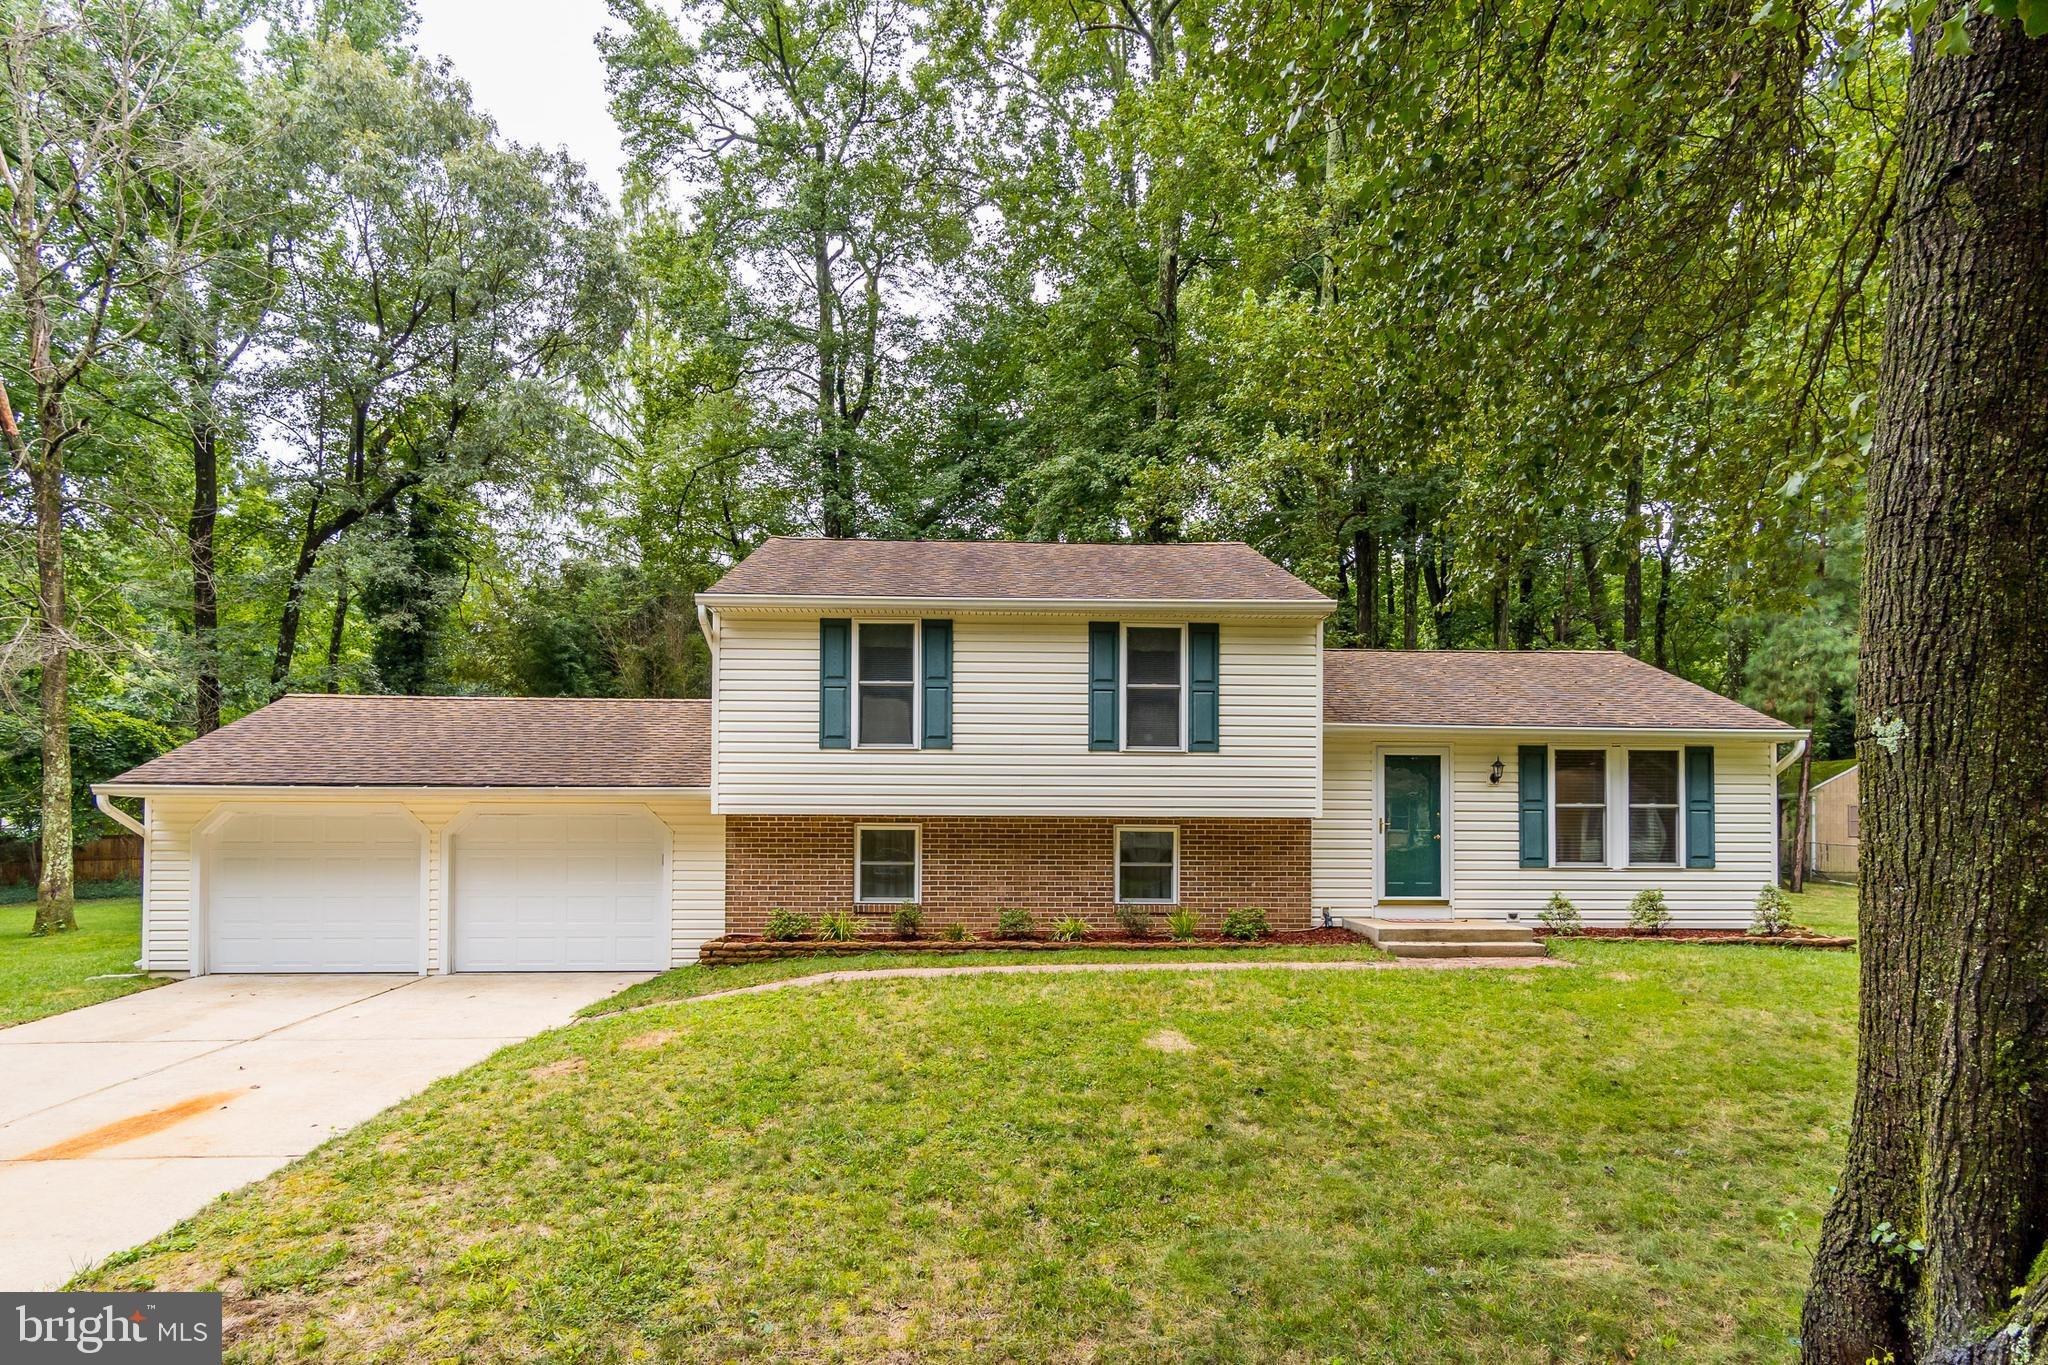 This is a beautiful 4 level split home offering 3 large bedrooms, 2.5 bathrooms, an unfinished basem